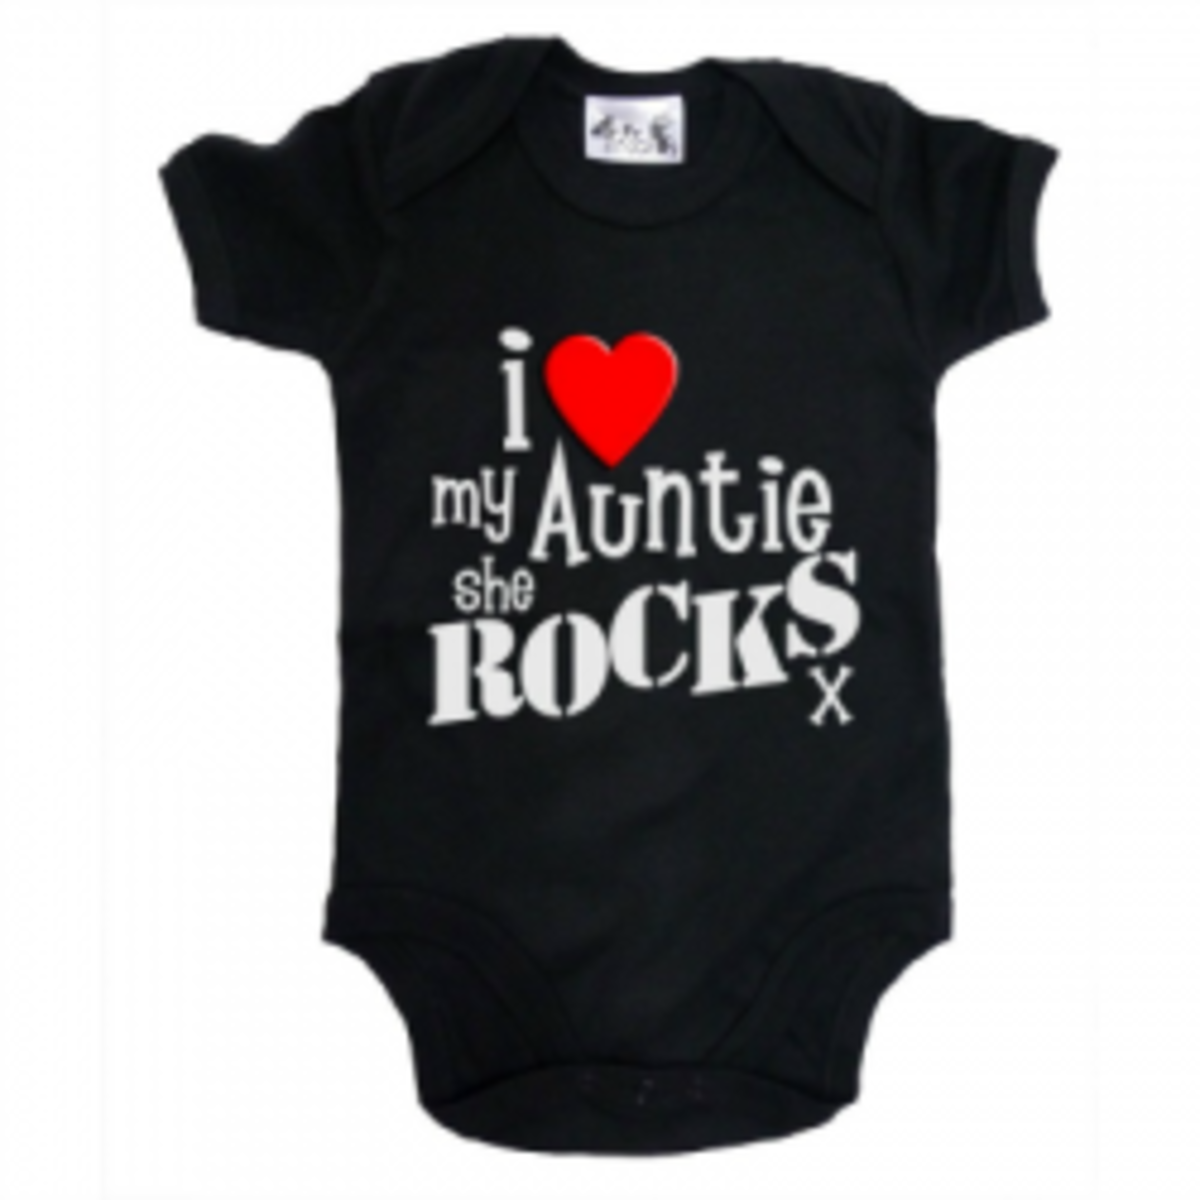 Image: I Love my AUNTIE Baby & Toddler Short Sleeve Bodysuit by Dirty Fingers - Available at Amazon